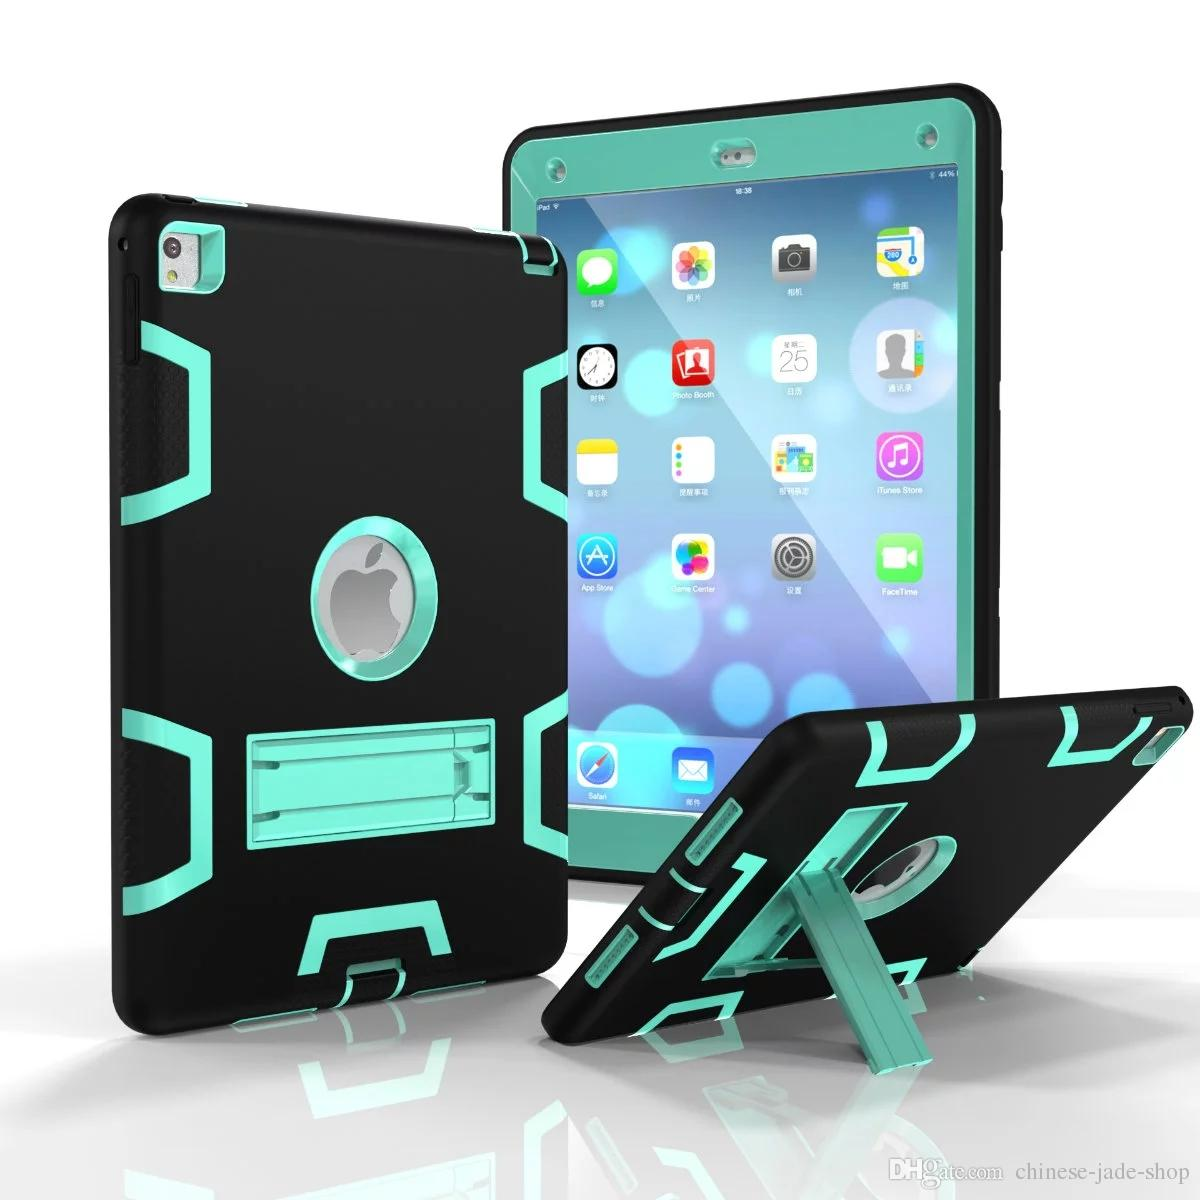 A Type Heavy Duty Shockproof Kickstand Hybrid Robot Case Cover for iPad pro 9.7 Pro 10.5 ipad 2 3 4 air 1 air 2 30pcs/lot